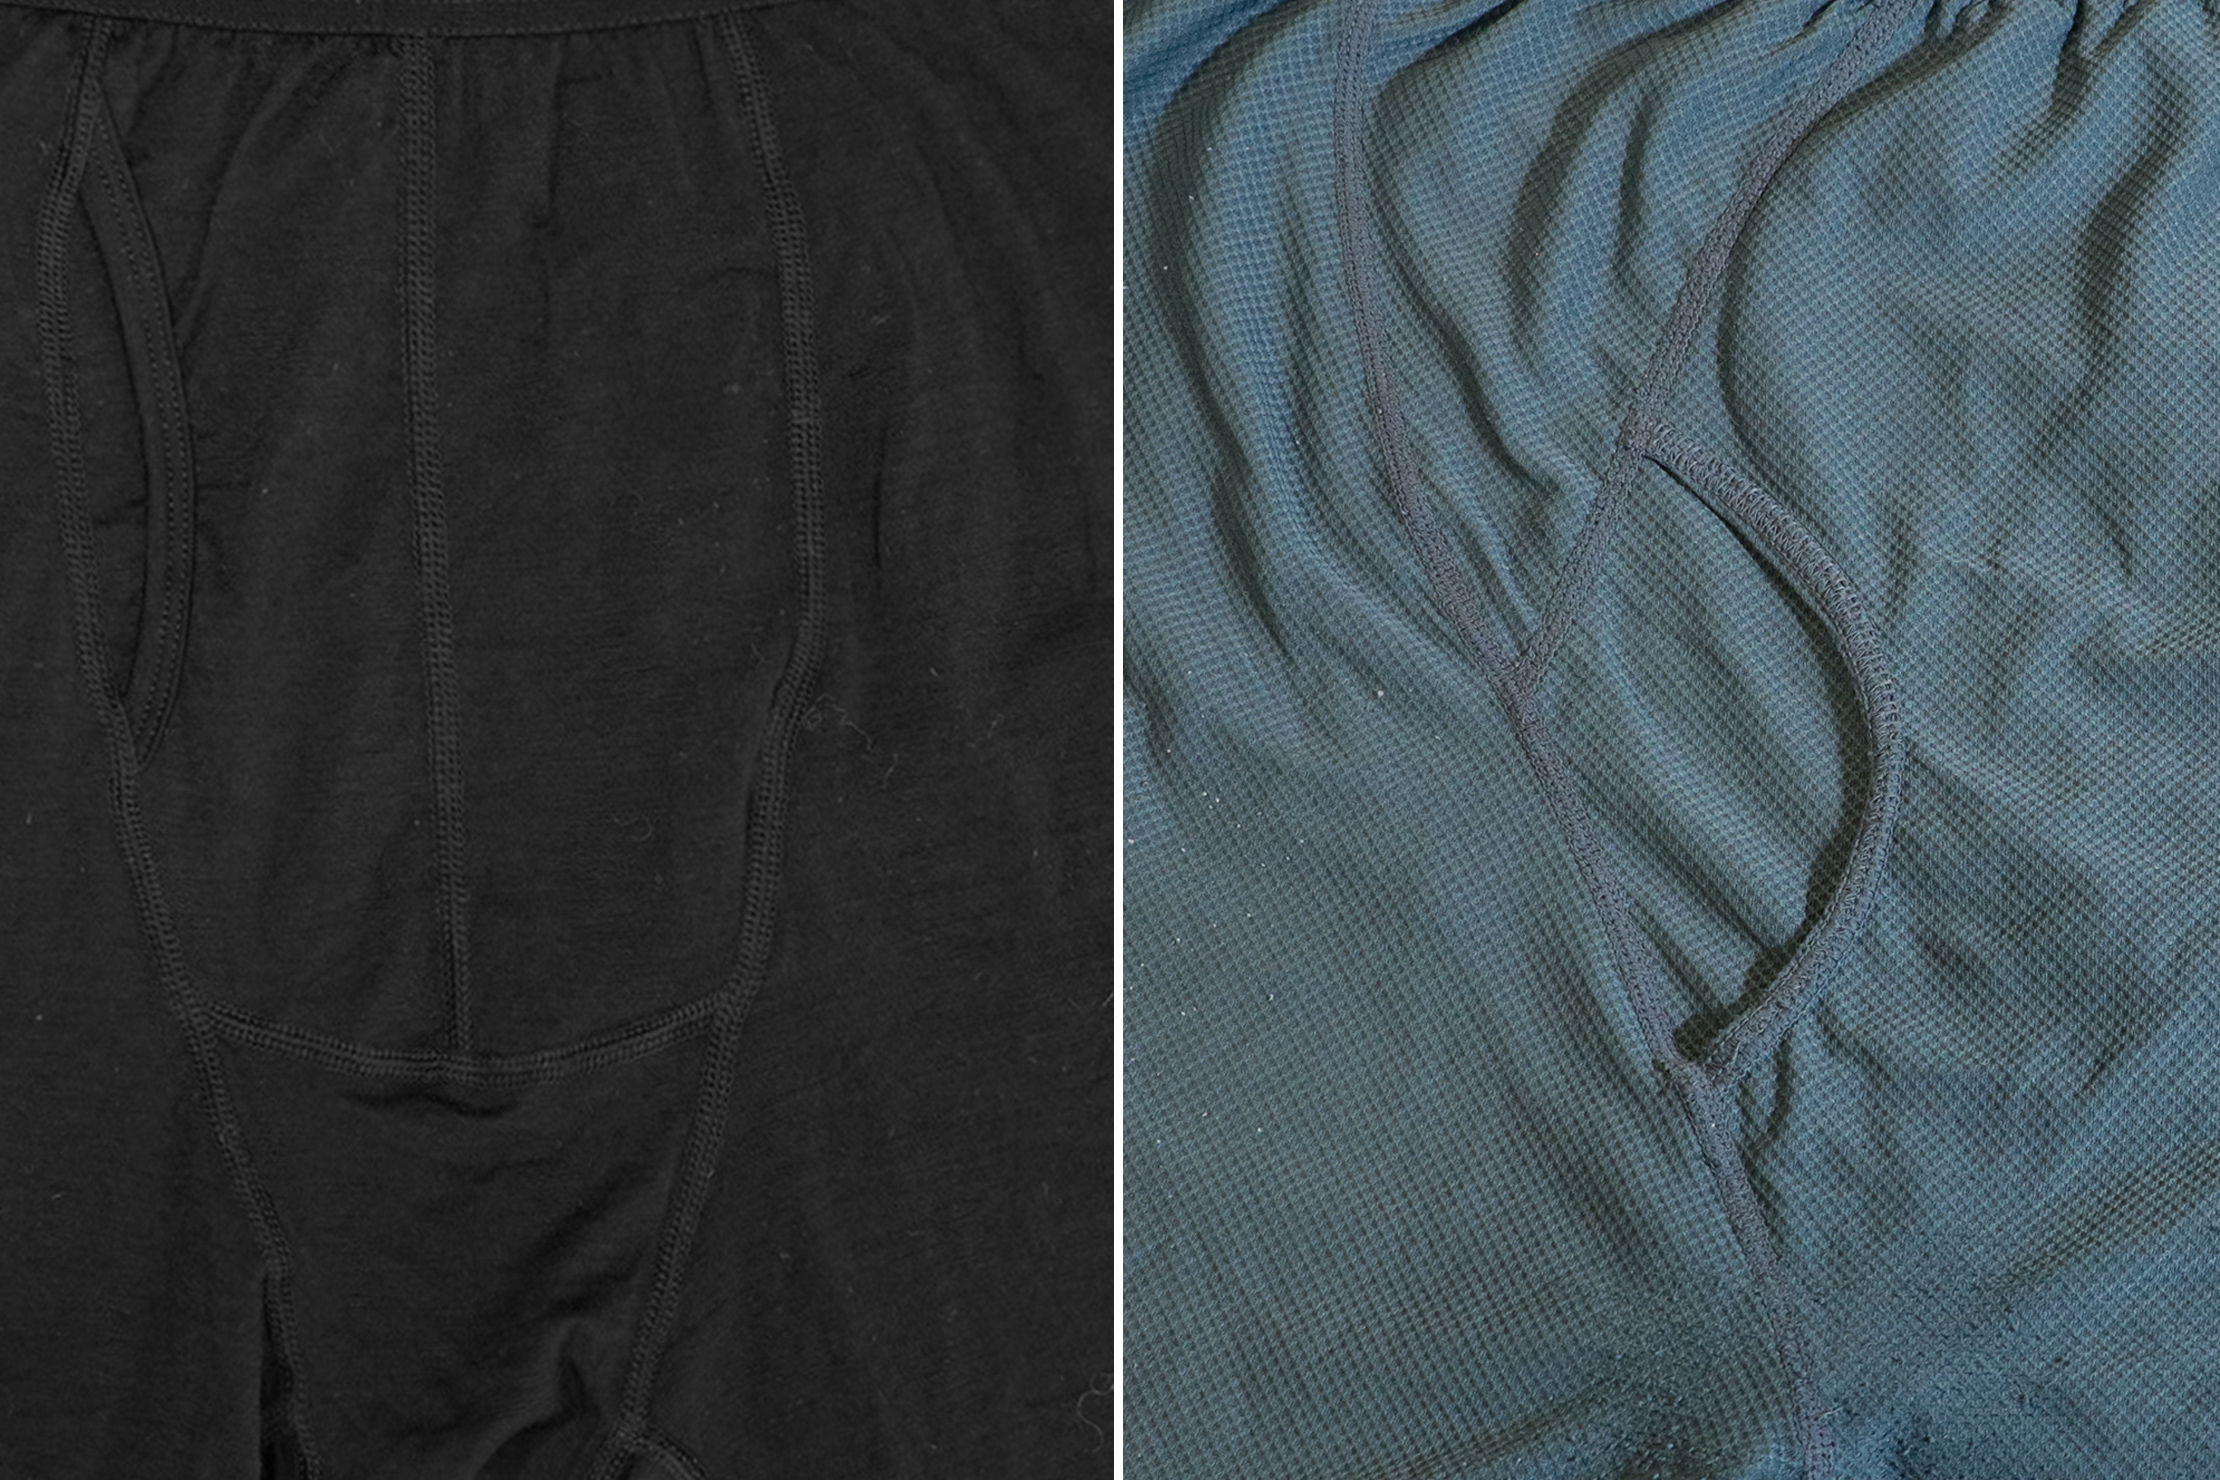 Woolx Reaction Boxer Brief Merino Wool (left) And ExOfficio Give-N-Go Boxer Brief (right)